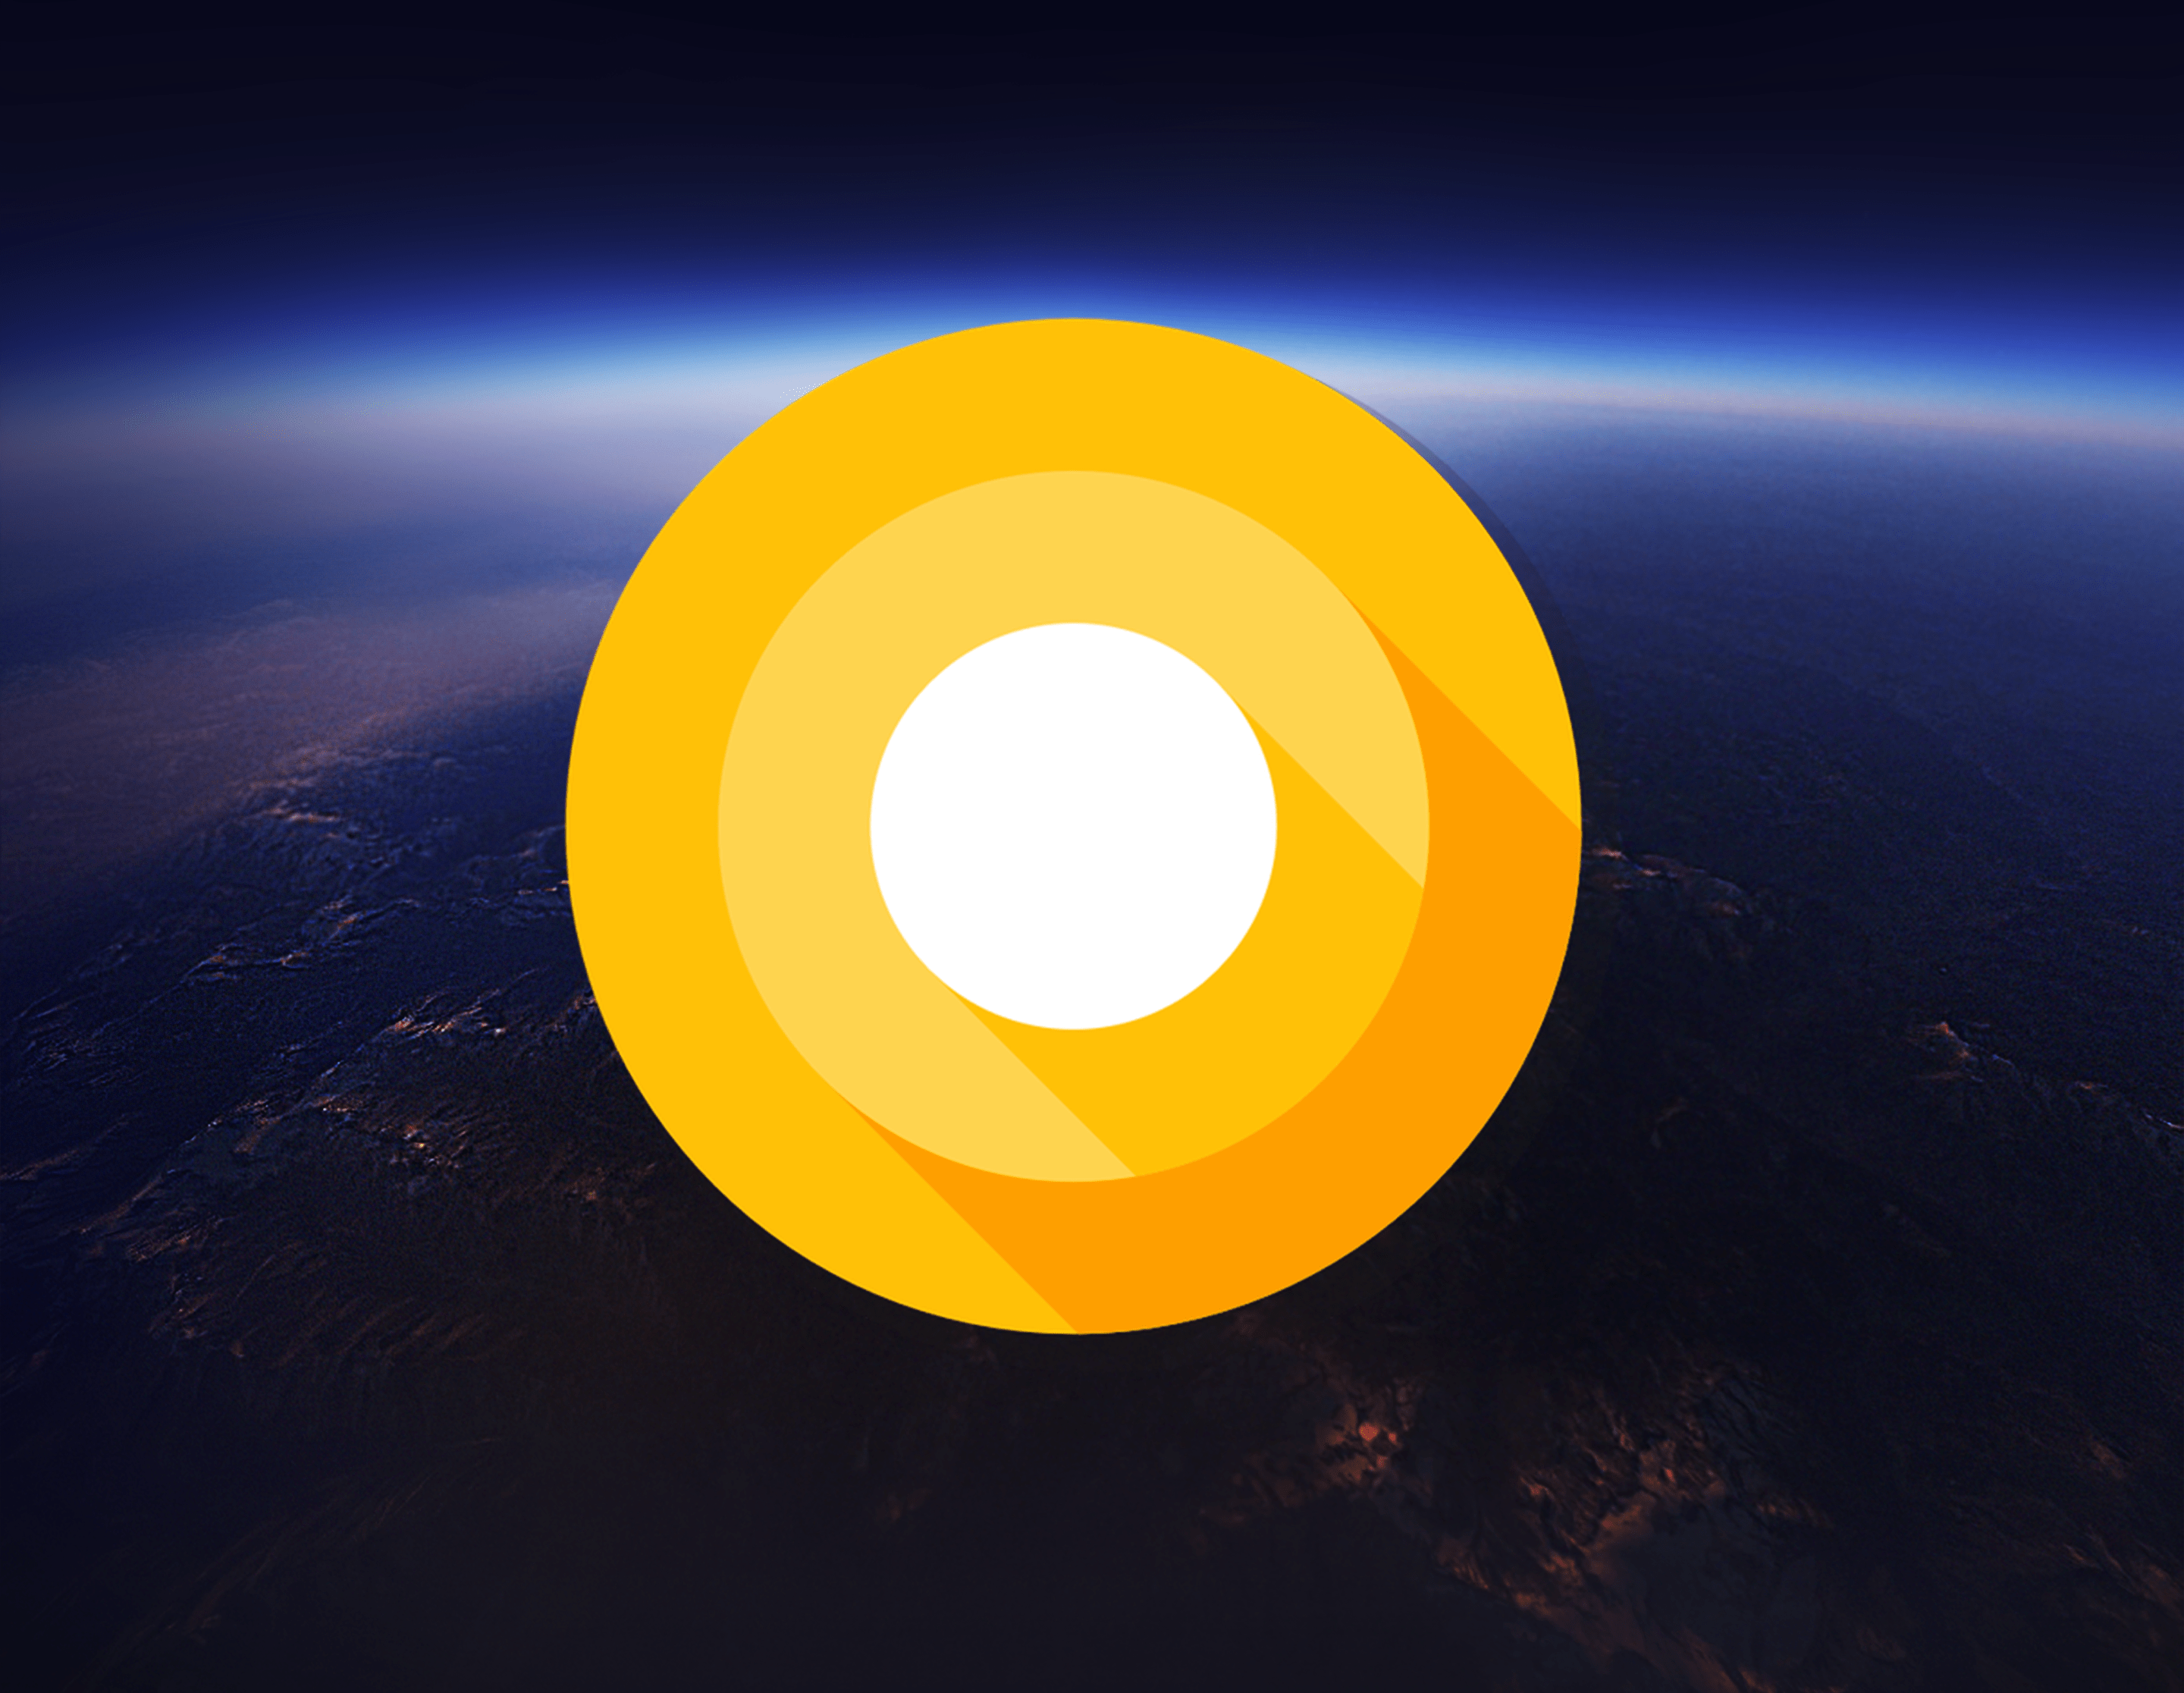 Android O makes its public debut this fall.